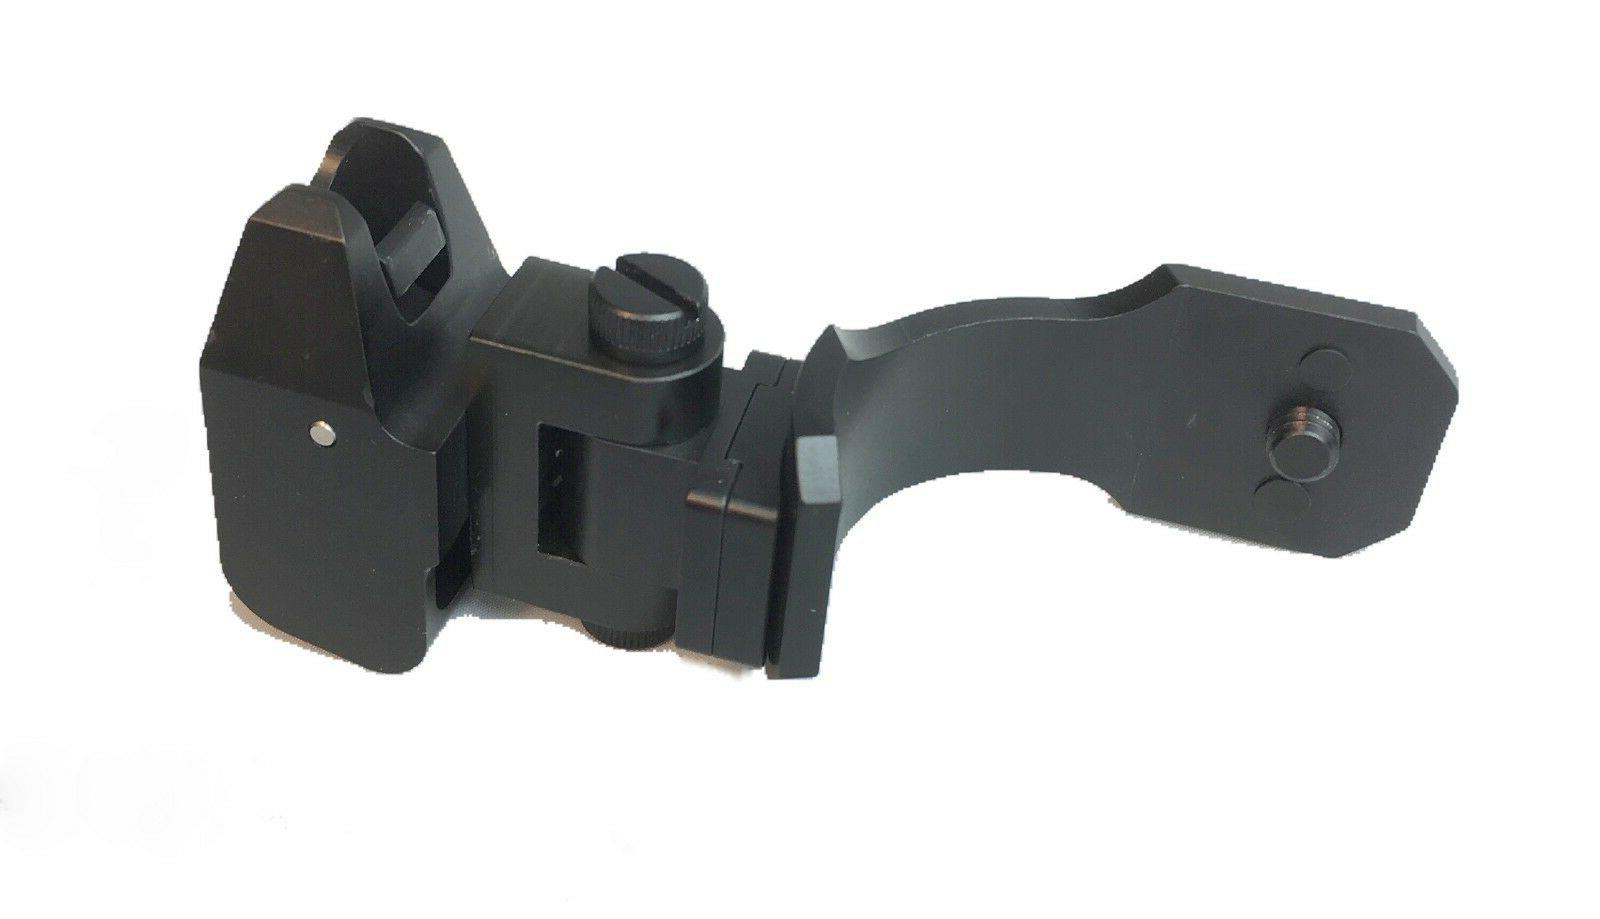 J Arm Adapter AN/PVS-14 or